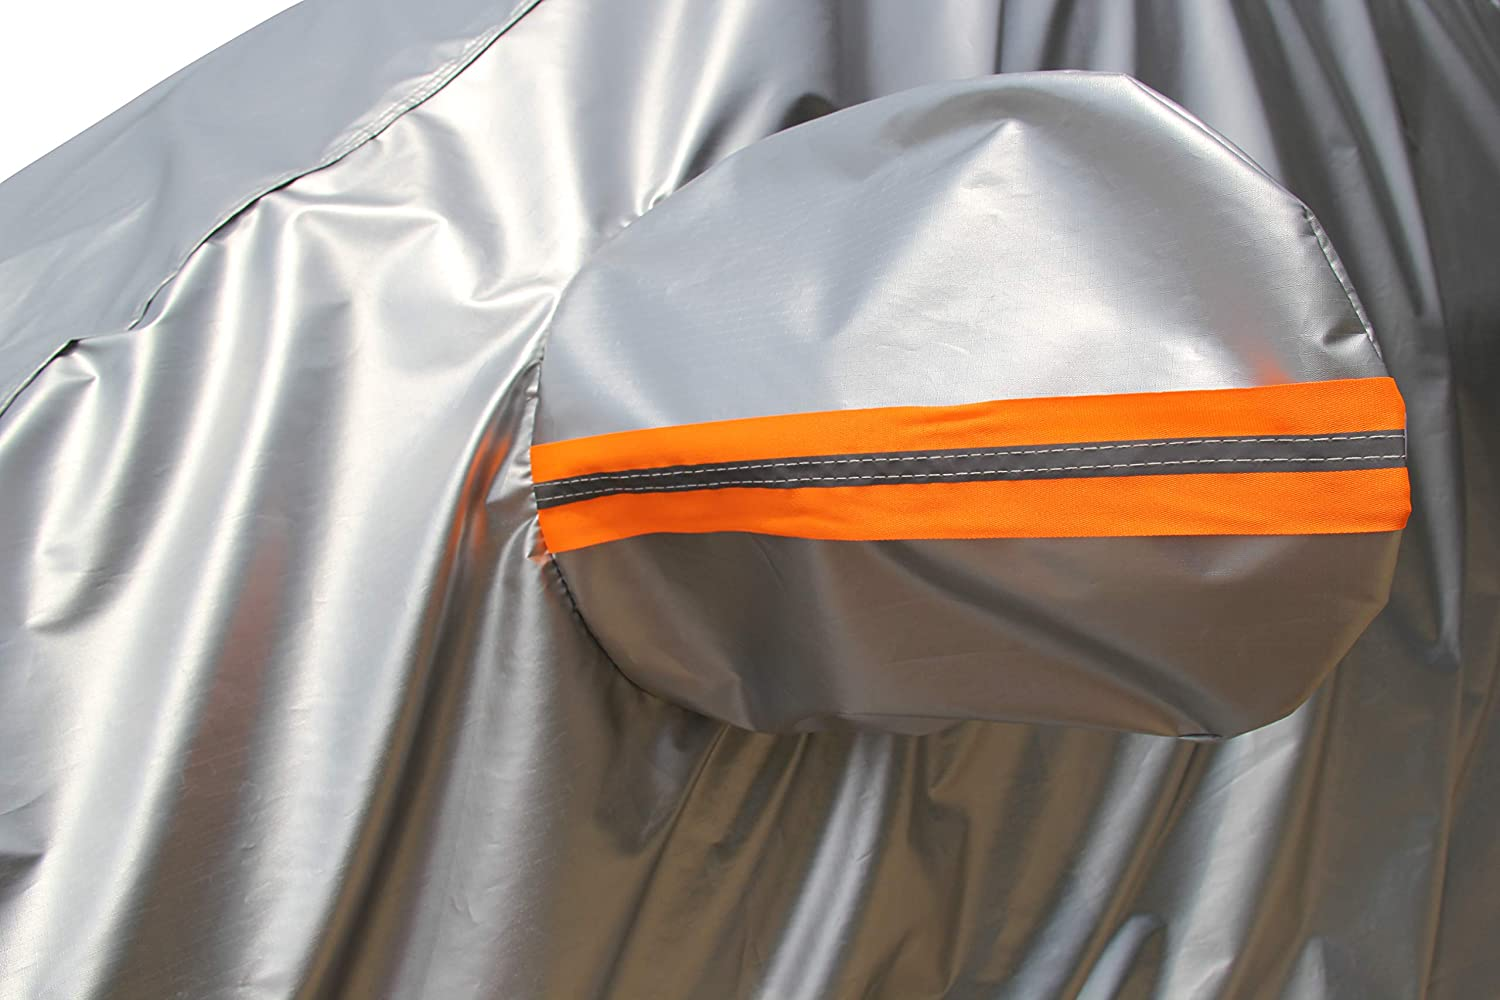 Shieldo Heavy Duty Car Cover with Windproof Straps and Buckles 100/% Waterproof All Season Weather-Proof Fit 191-200 Length Sedan